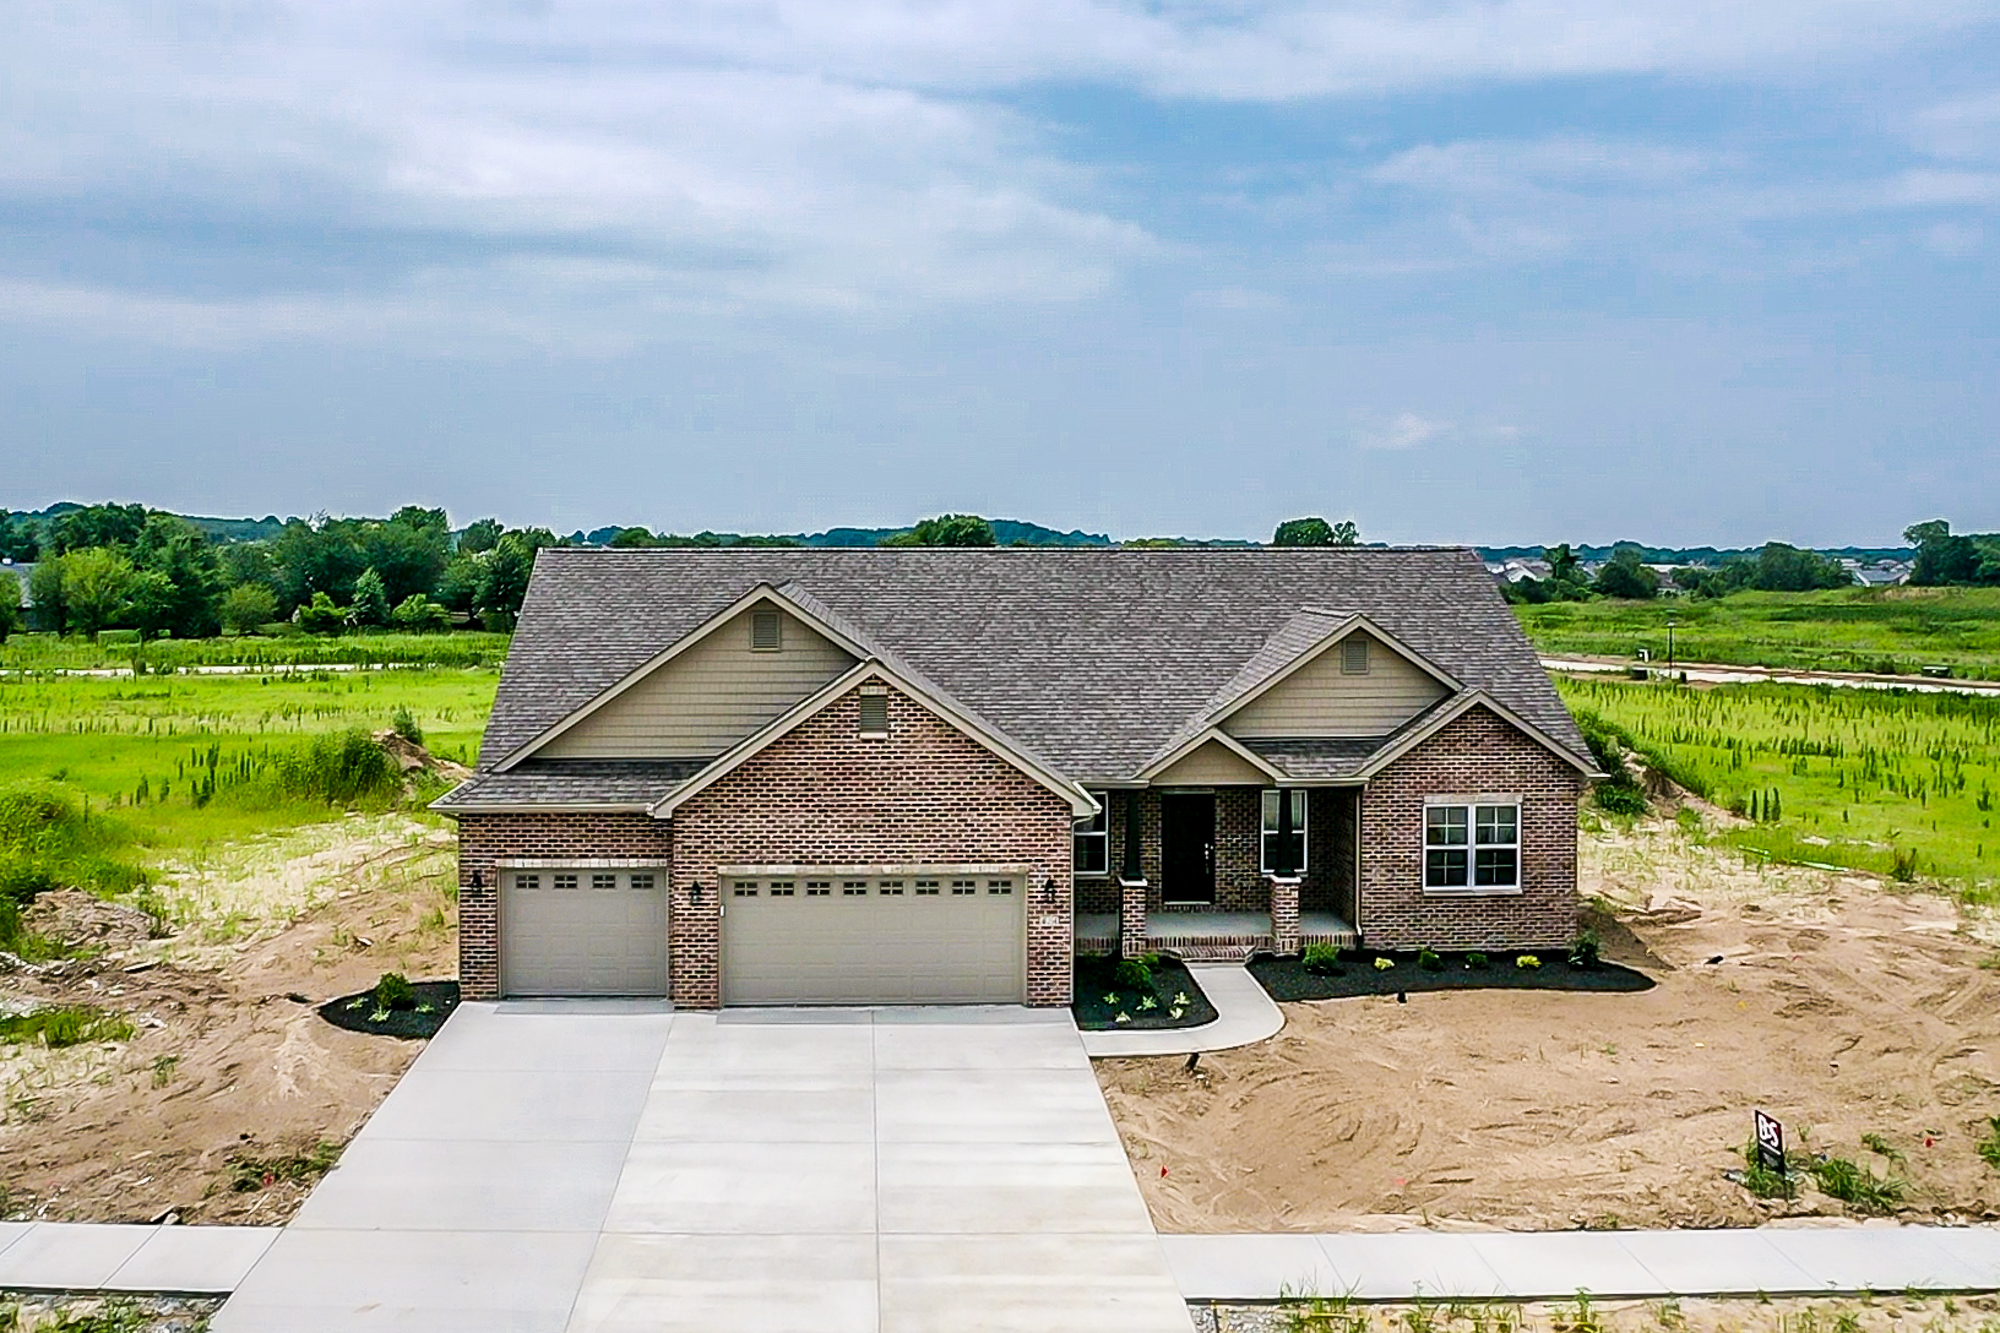 Home-For-Sale-Shiloh-Illinois-62269-Scott-AFB-10.jpg